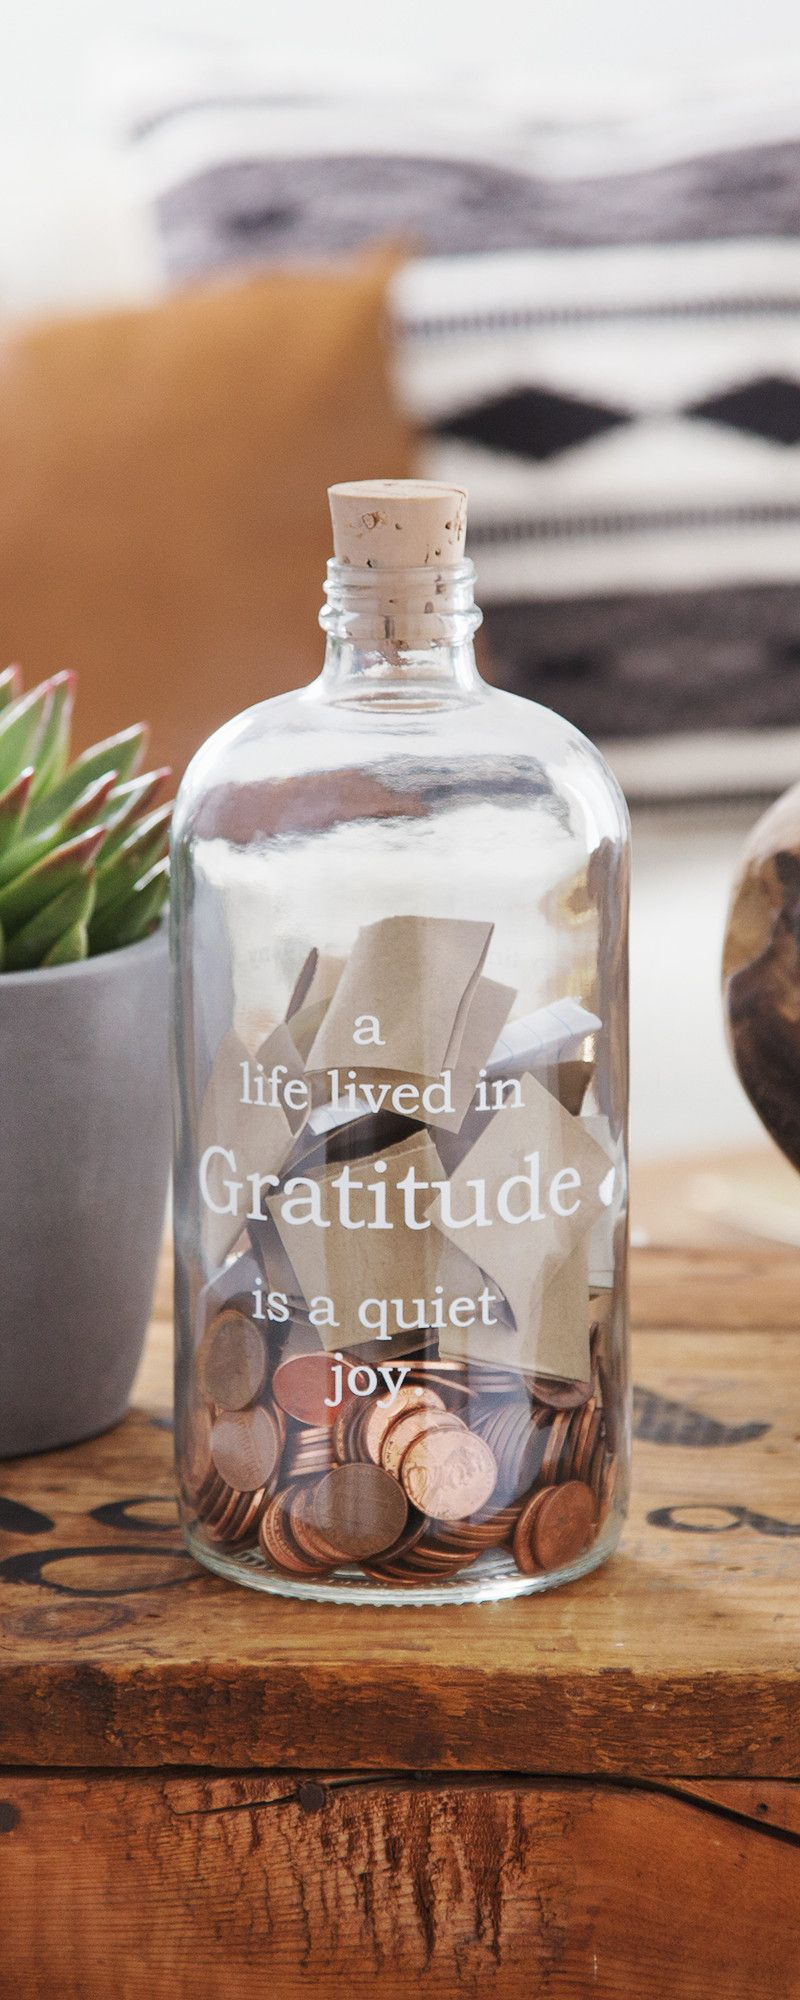 Be Thankful And Mindful With These Etched Glass Jars Discovered By The Grommet Fill With Notes Of Gratitude Or Gratitude Jar Happy Jar Crafts With Glass Jars